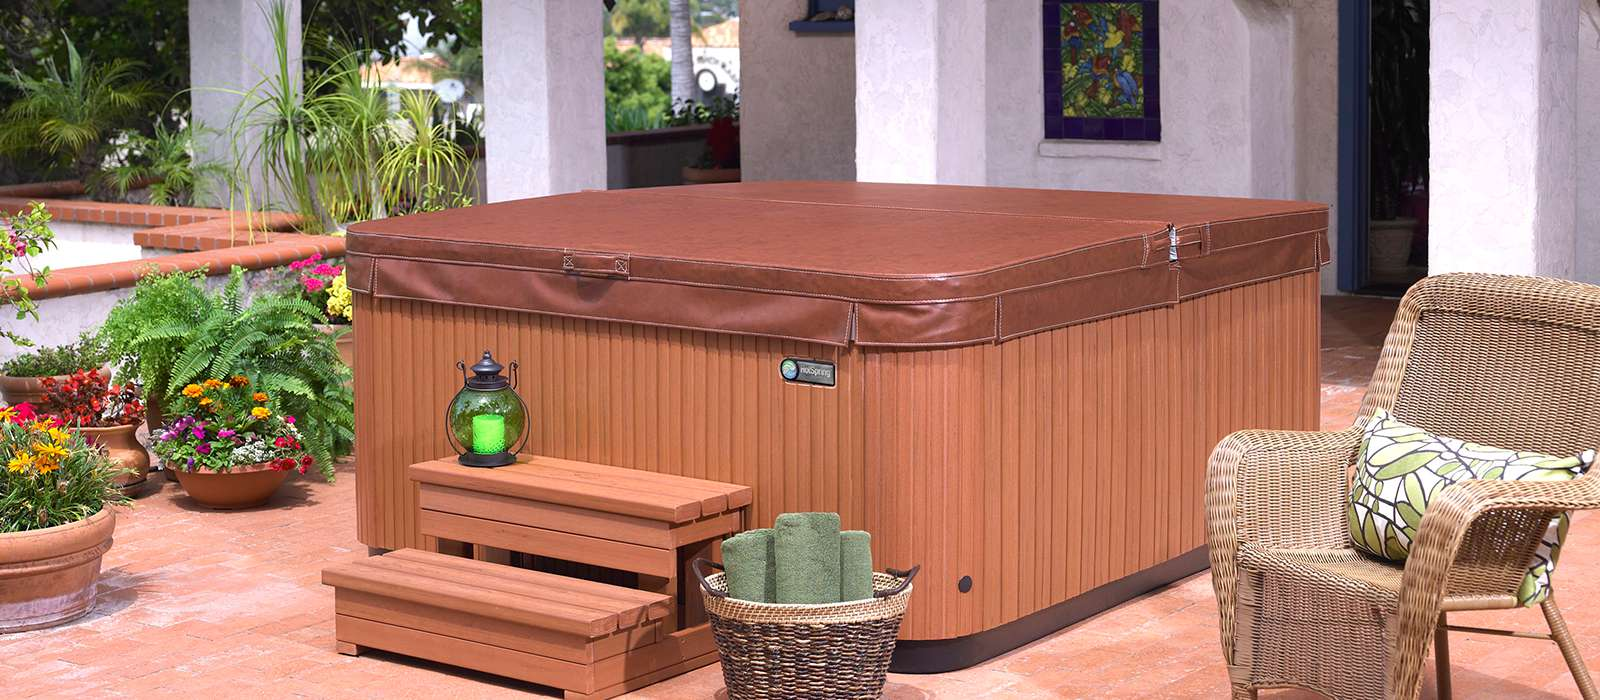 Featuring sculpted shells and Everwood® cabinets in a variety of colors, the Glow spa from Hot Spring Spas is a beautiful addition to any backyard.